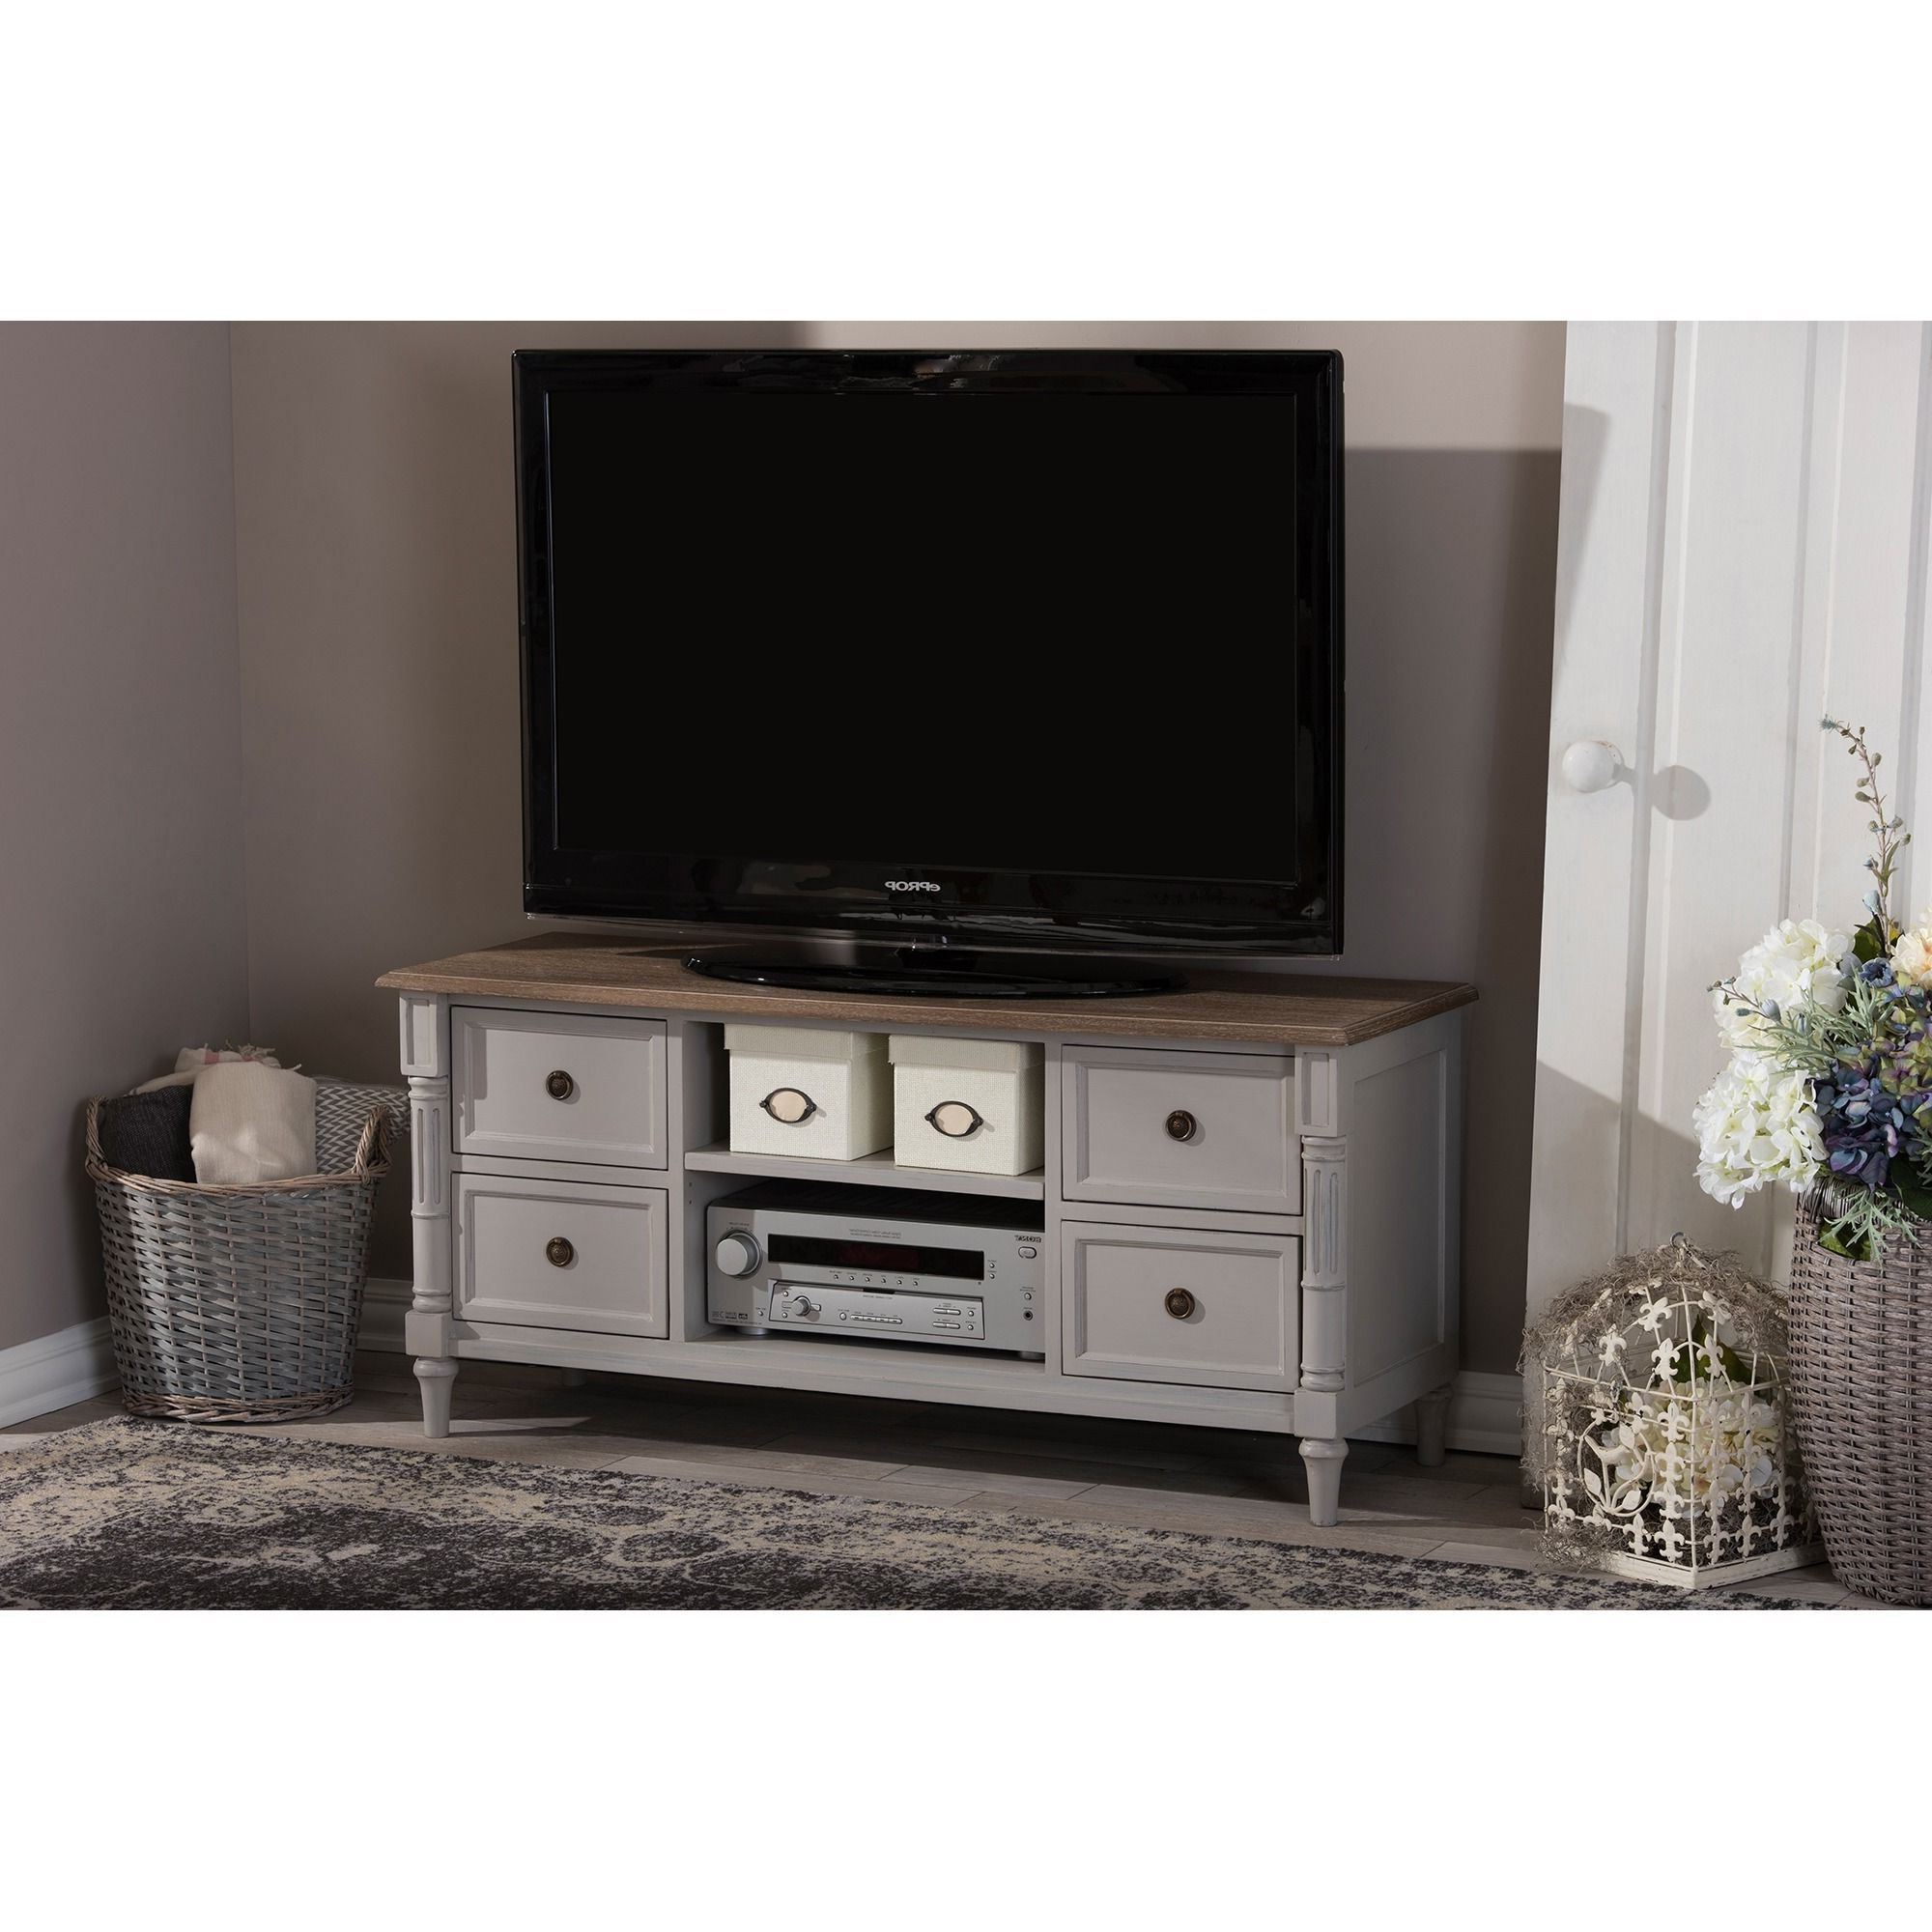 Country Style Tv Cabinets With Favorite Rustic, Country Farmhouse Pieces Like The Edouard Tv Cabinet Work To (View 6 of 20)